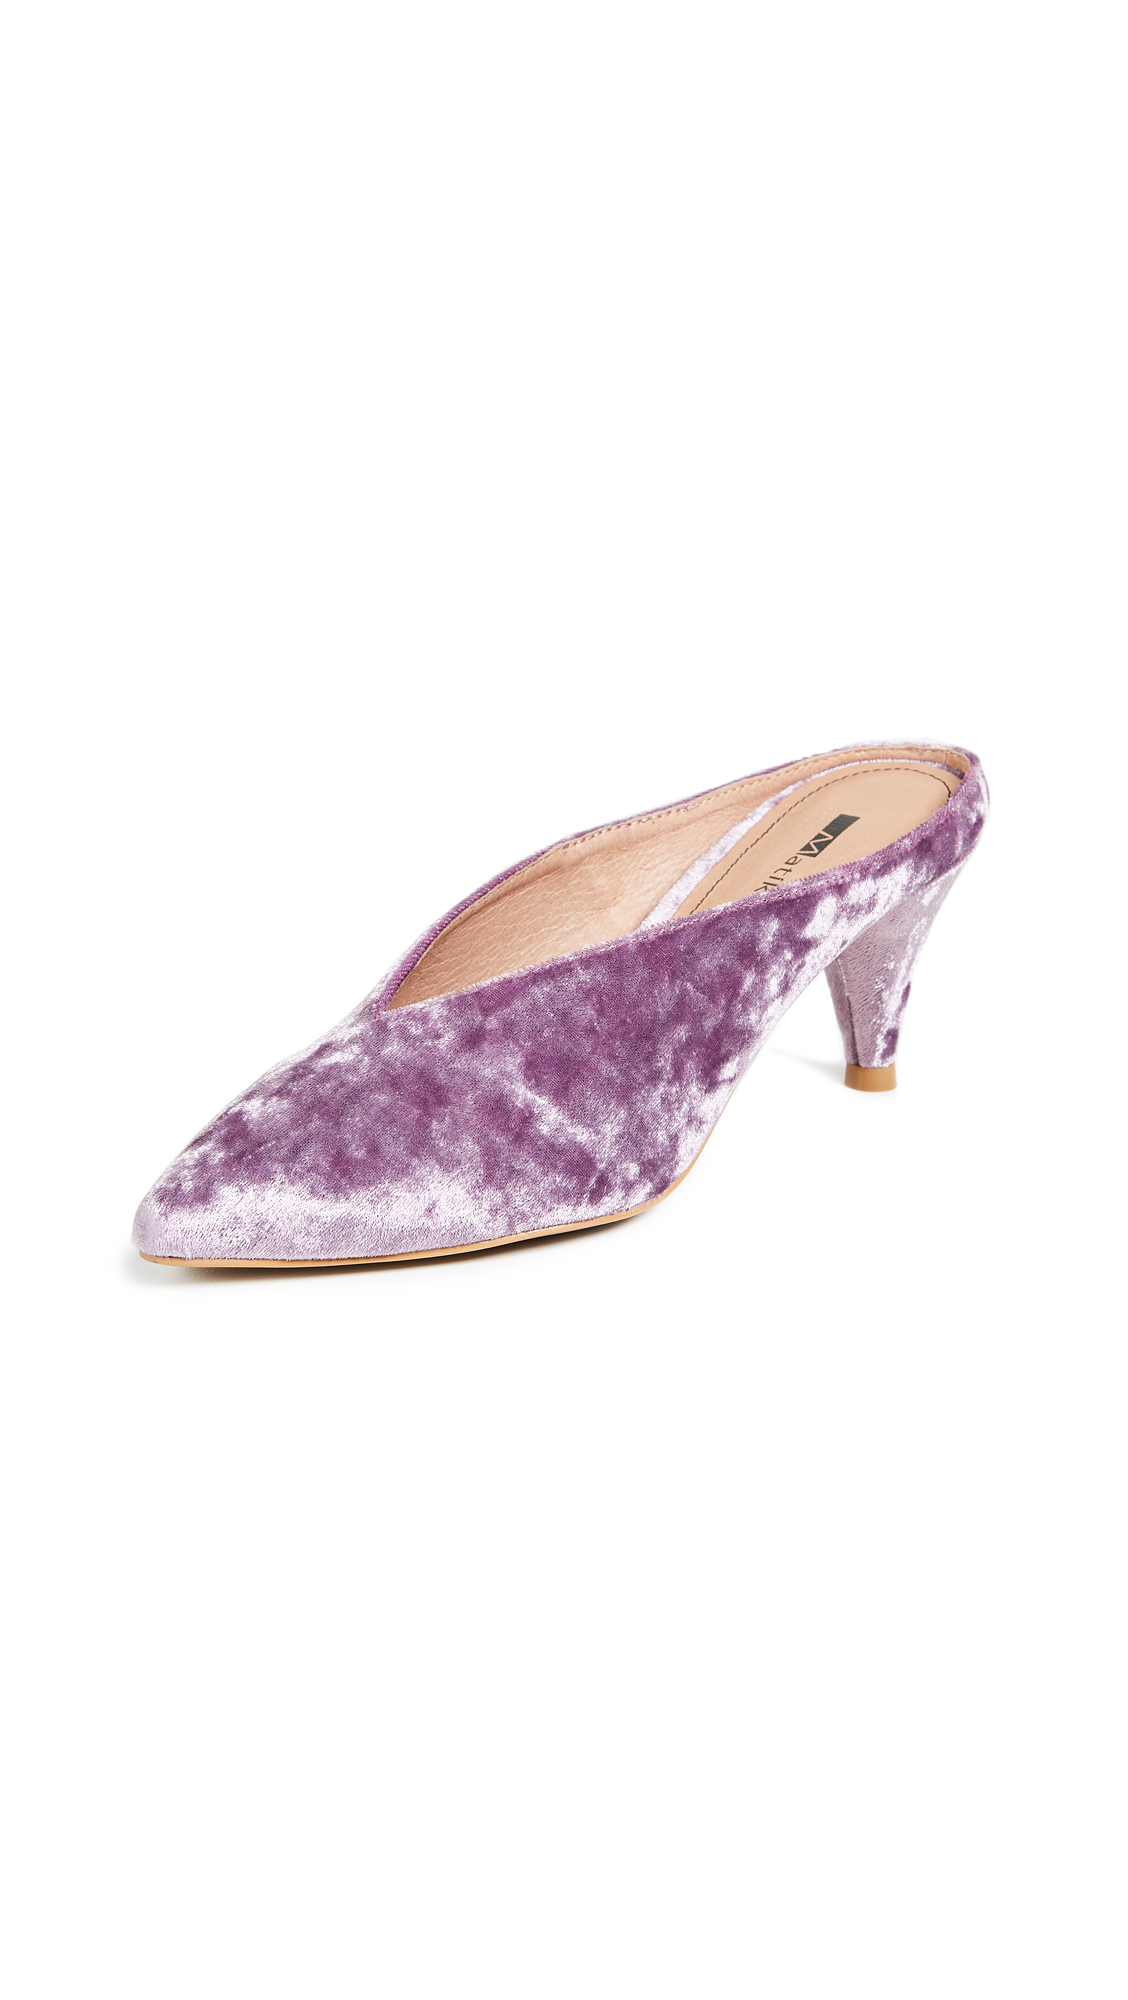 Matiko Lisa Point Toe Mules - Purple